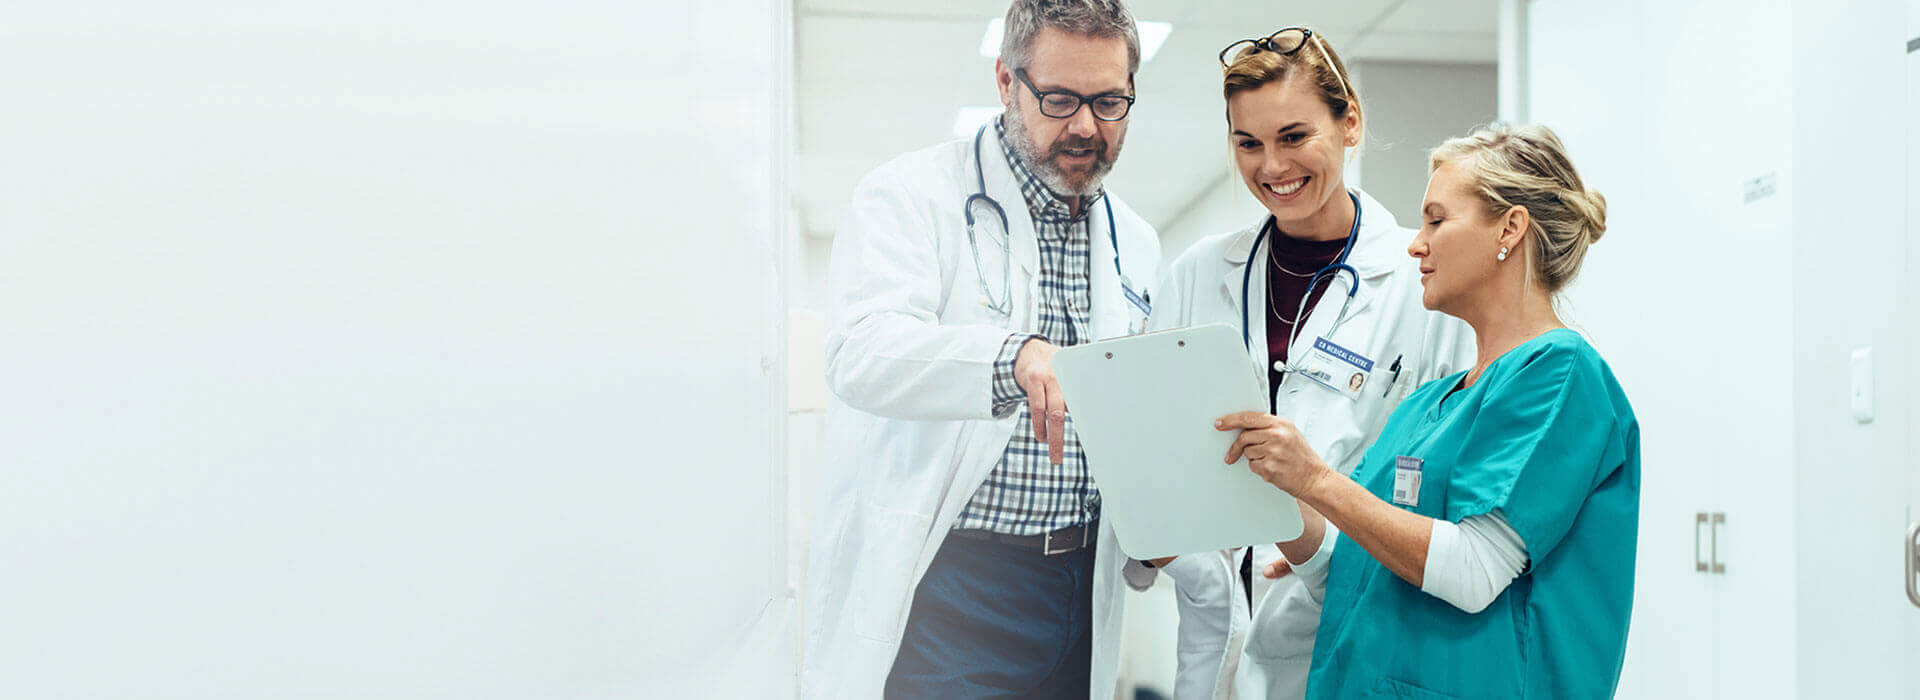 Physicians and nurse collaborate, reviewing patient notes before discharge